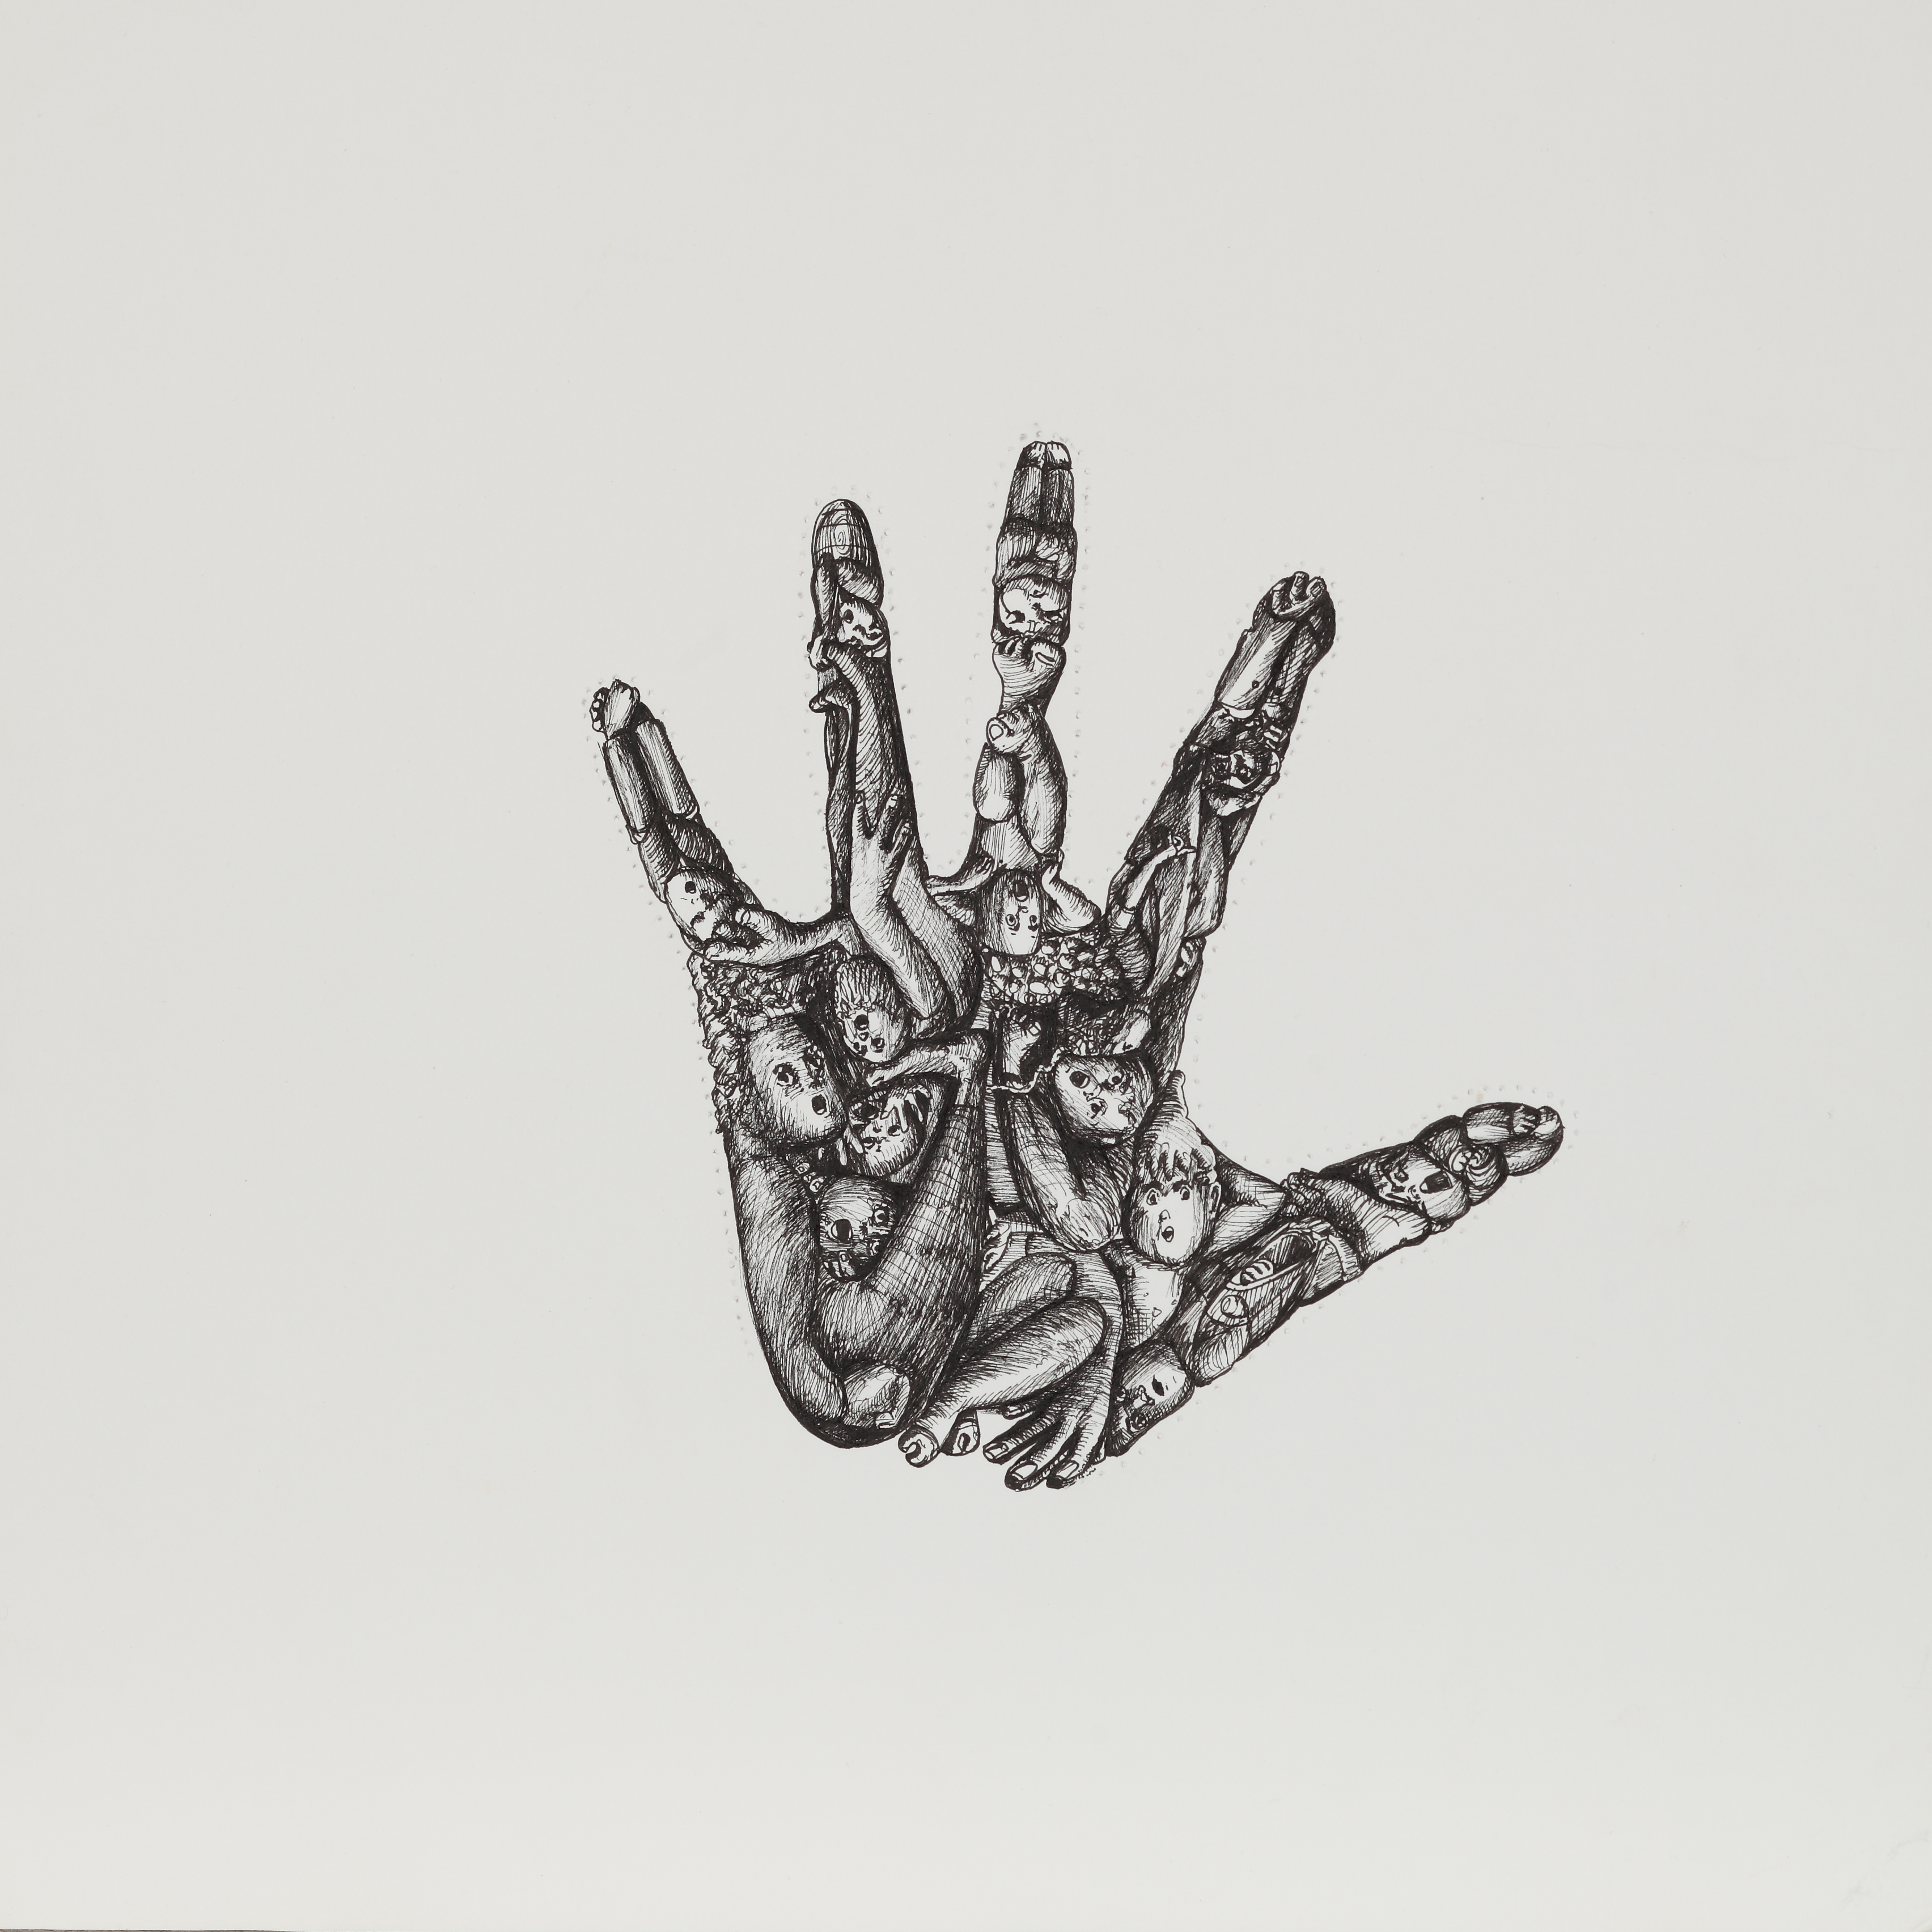 HAND OF THE ARTIST